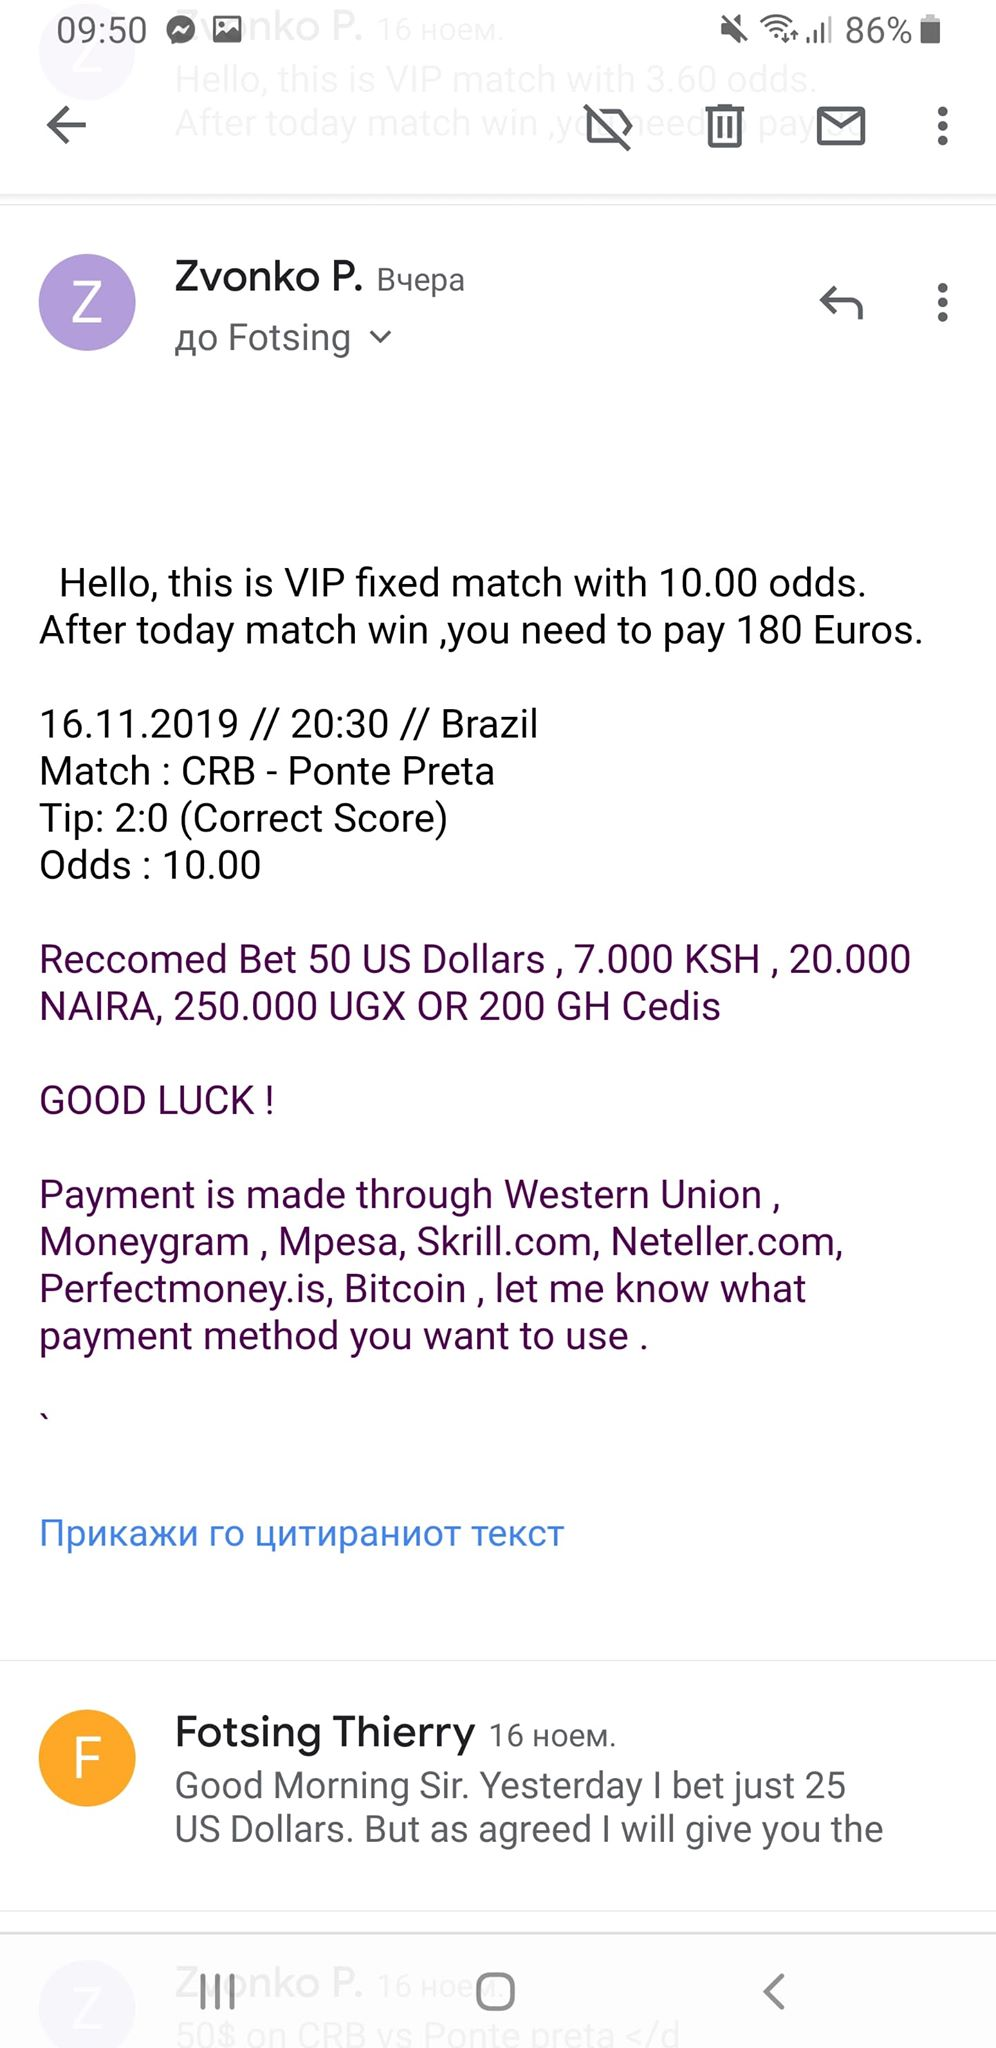 Pay after win 17 10 2019 Pay after winning fixed match 100 sure win half time full time , rigged manipulated fixed matches 100 sure wins payment after win-client3